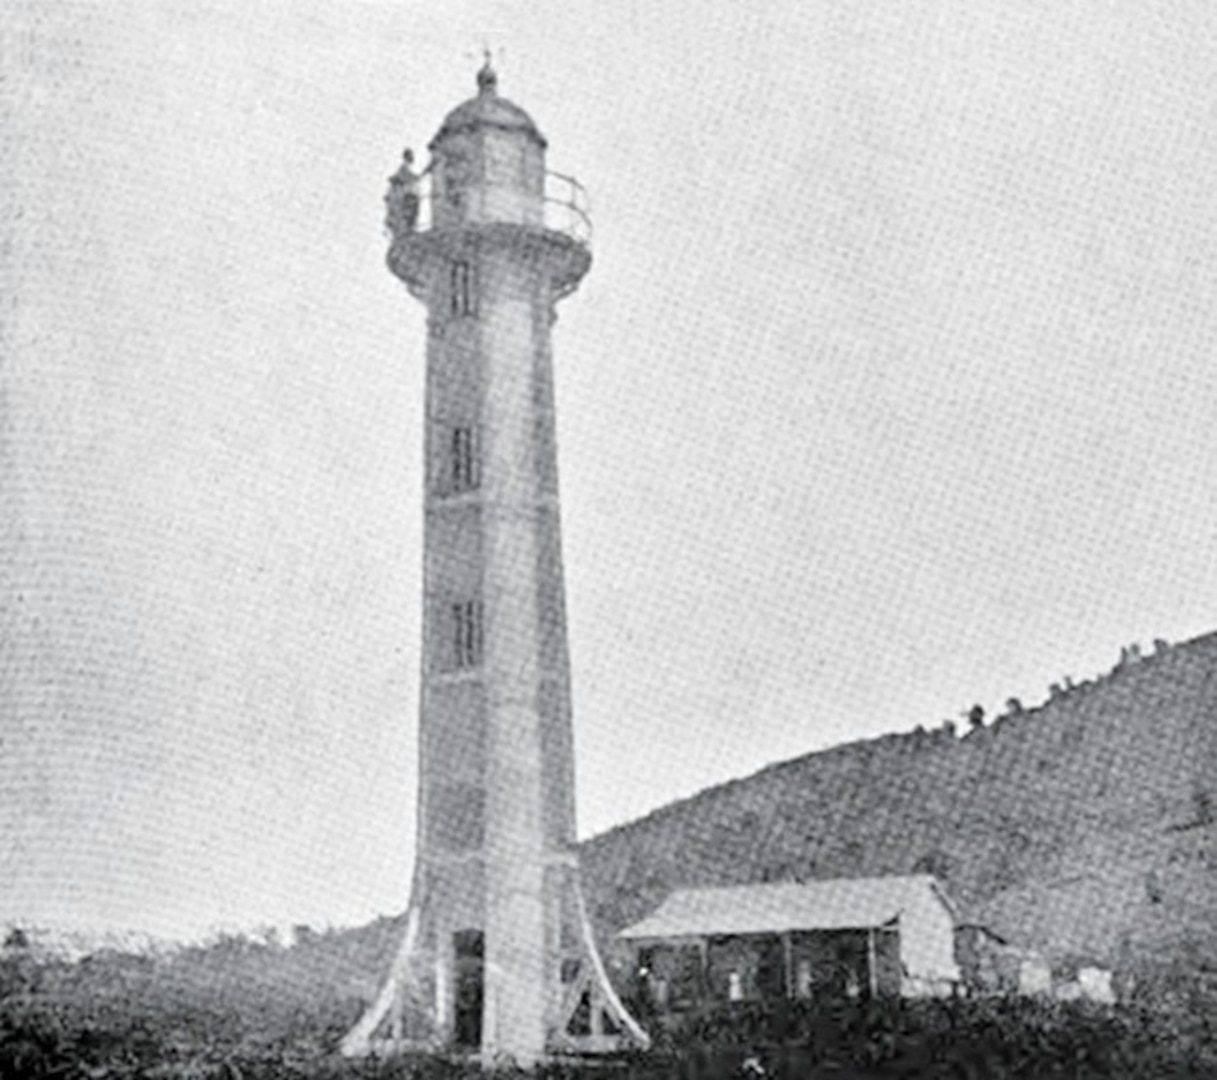 Guantanamo Lighthouse on Windward Point in 1901, just after the lighthouse's installation. All metal and hollow inside, it was transported in six sections, assembled and painted in Guantanamo. (Photo courtesy of Lighthousefriends.com)